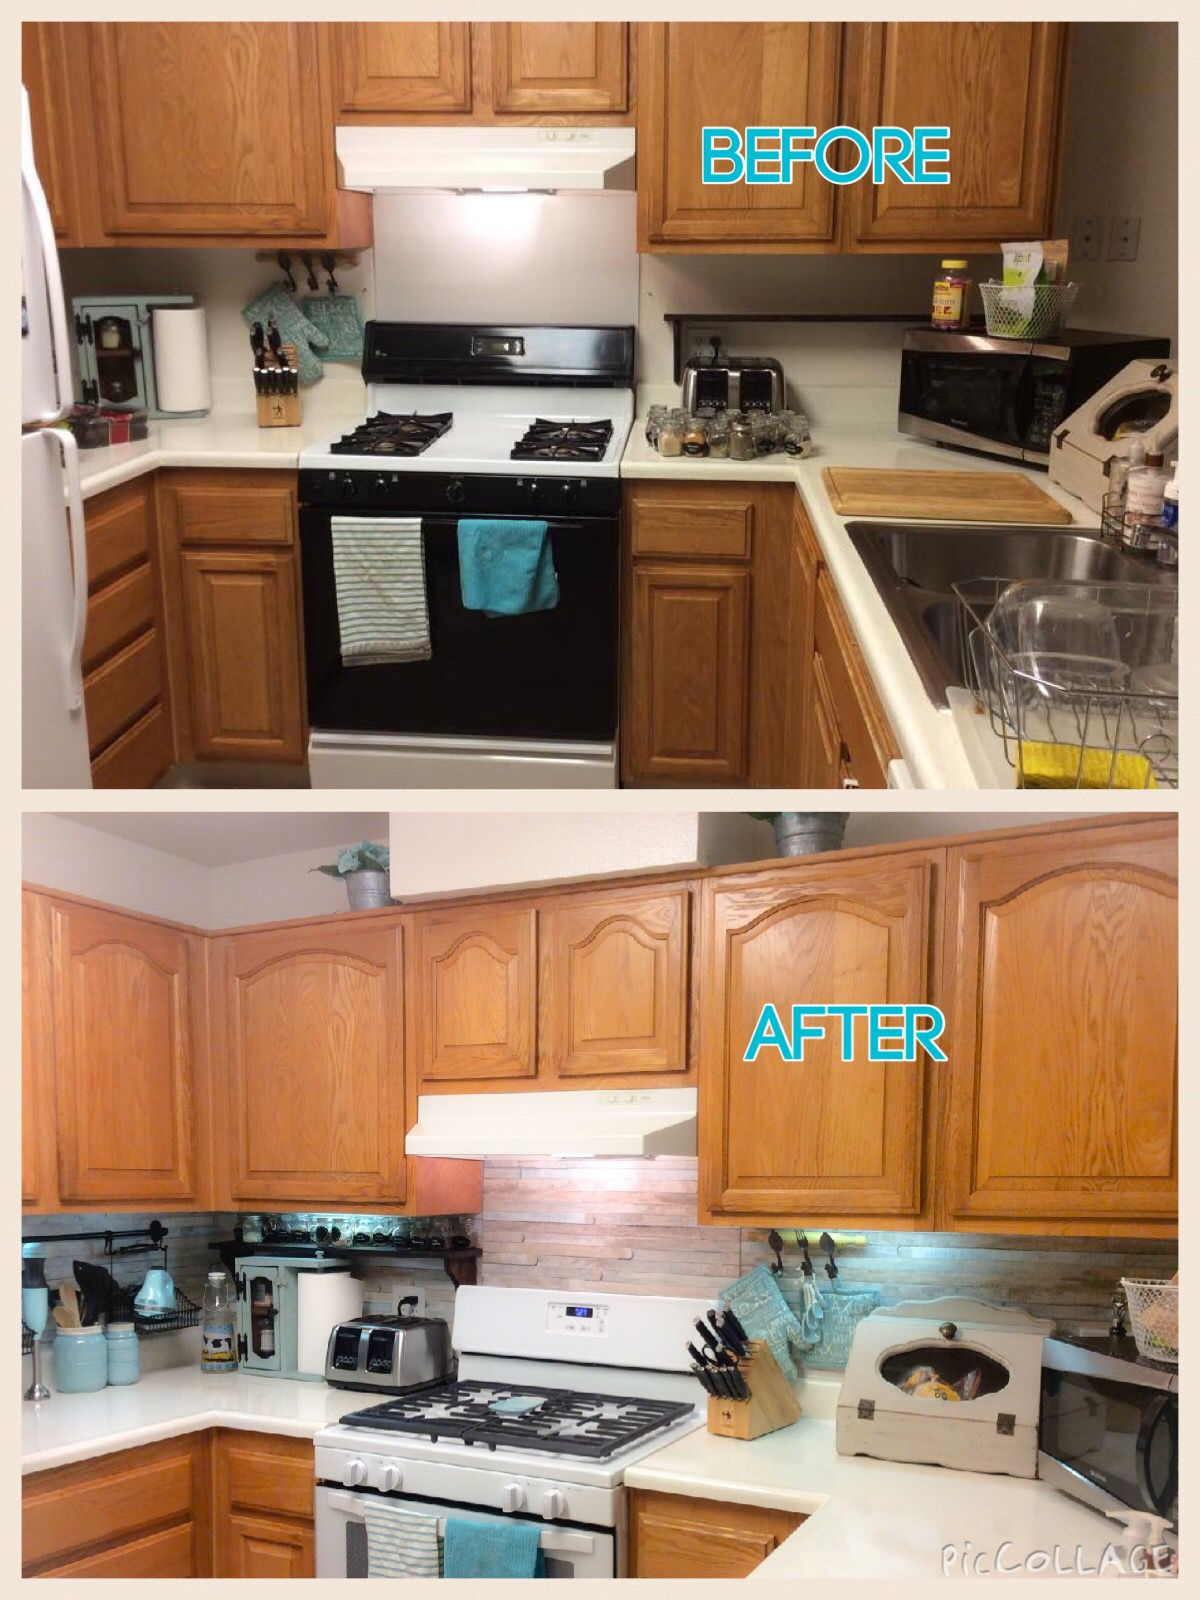 Adhesive Contact Paper Back Splash Great For Renters This Is Easy To Put Up And Won T Remove Paint You Can Buy It Paint Remover Kitchen Cabinets Home Decor